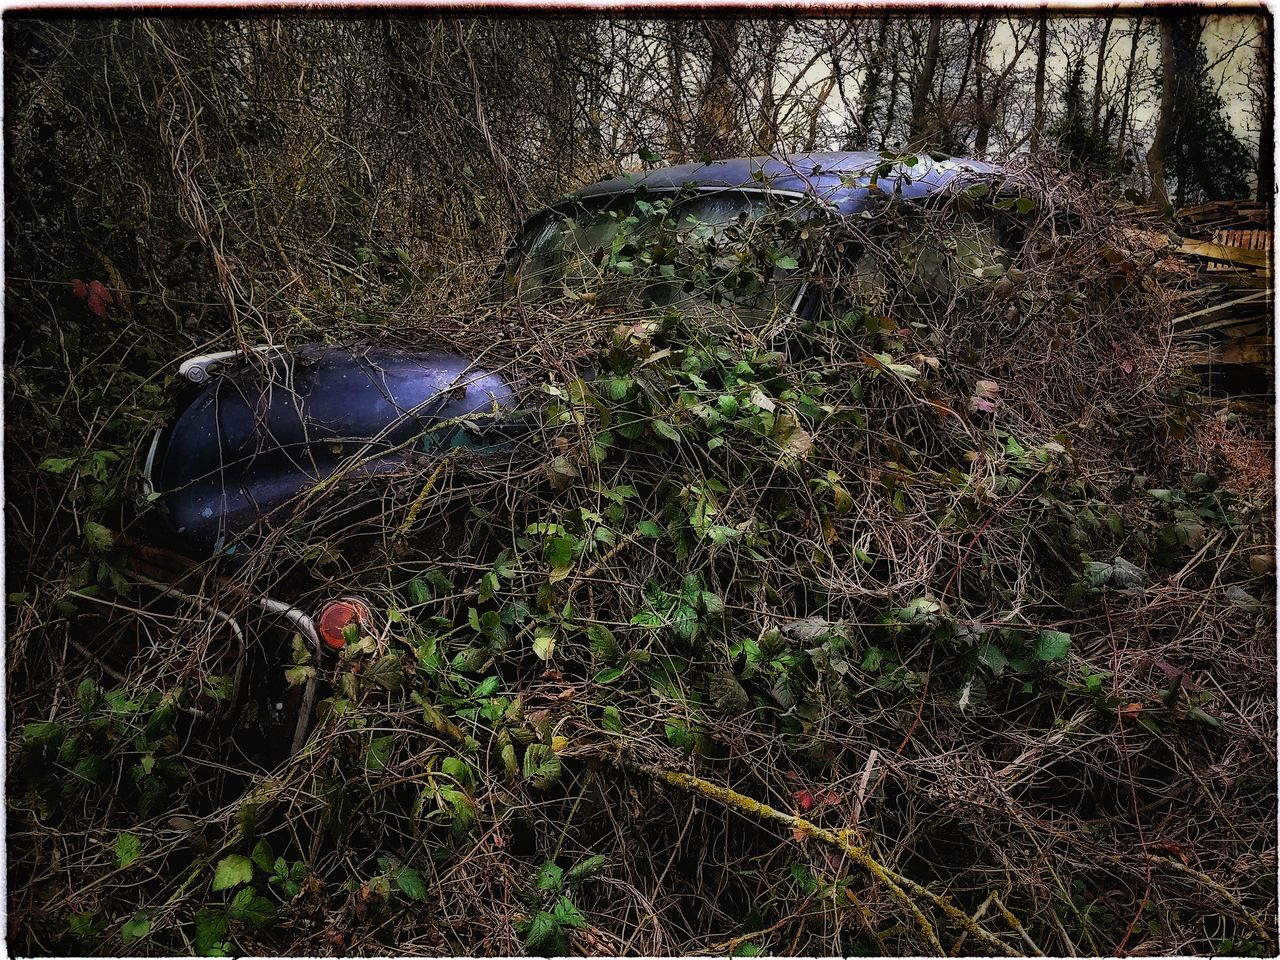 Is this what they mean by an off road parking space? Beauty Of Decay Rusting Metal Rusting Car Morris Minor Overgrown Overgrown And Beautiful Abandoned Abandoned Car Brambles Undergrowth